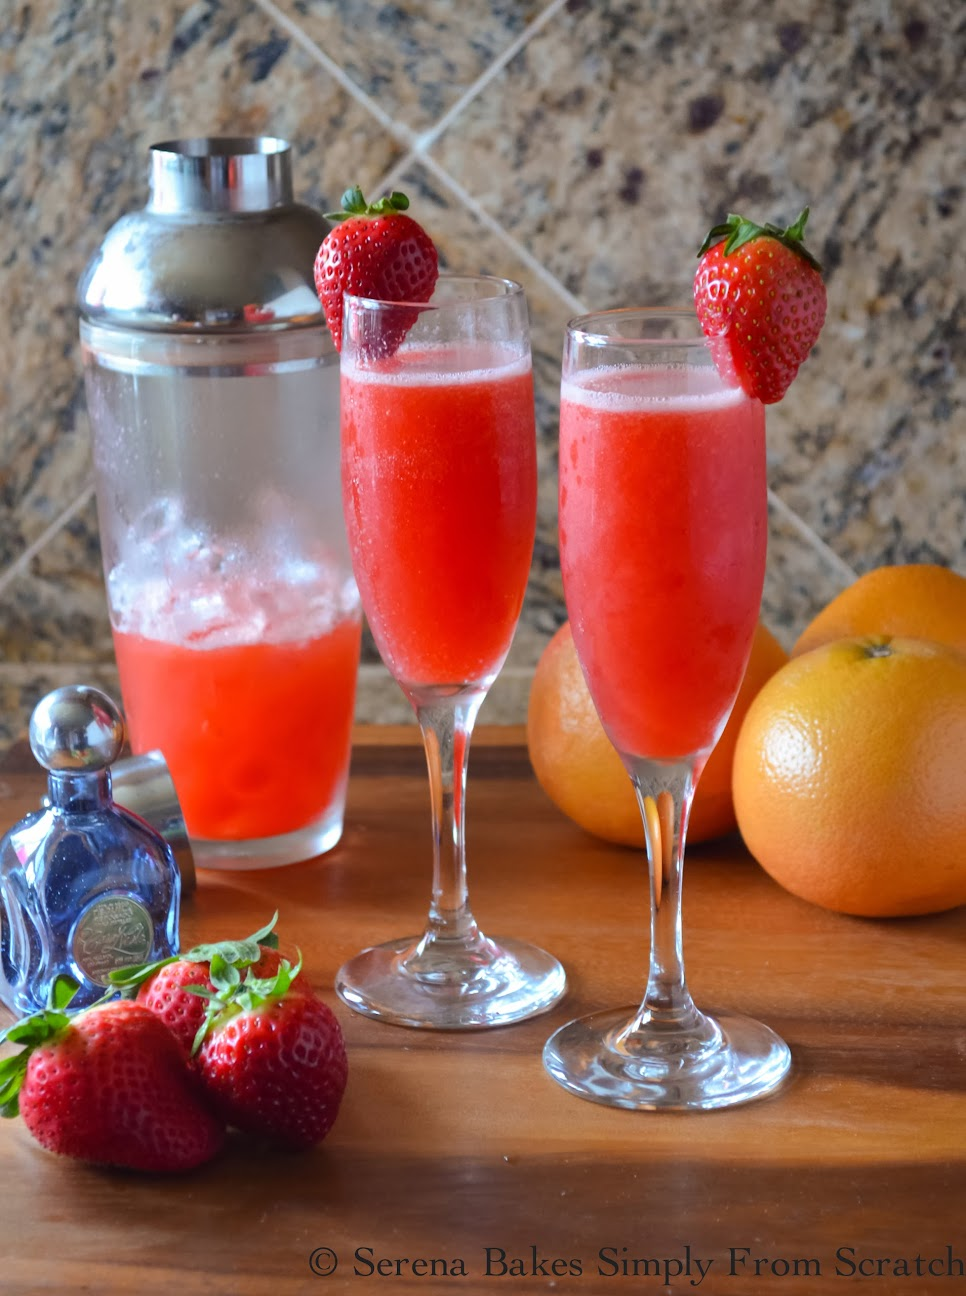 Cinco De Mayo Recipes To Your Fiesta On Strawberry Grapefruit Mimosas With a Shot Of Tequila!